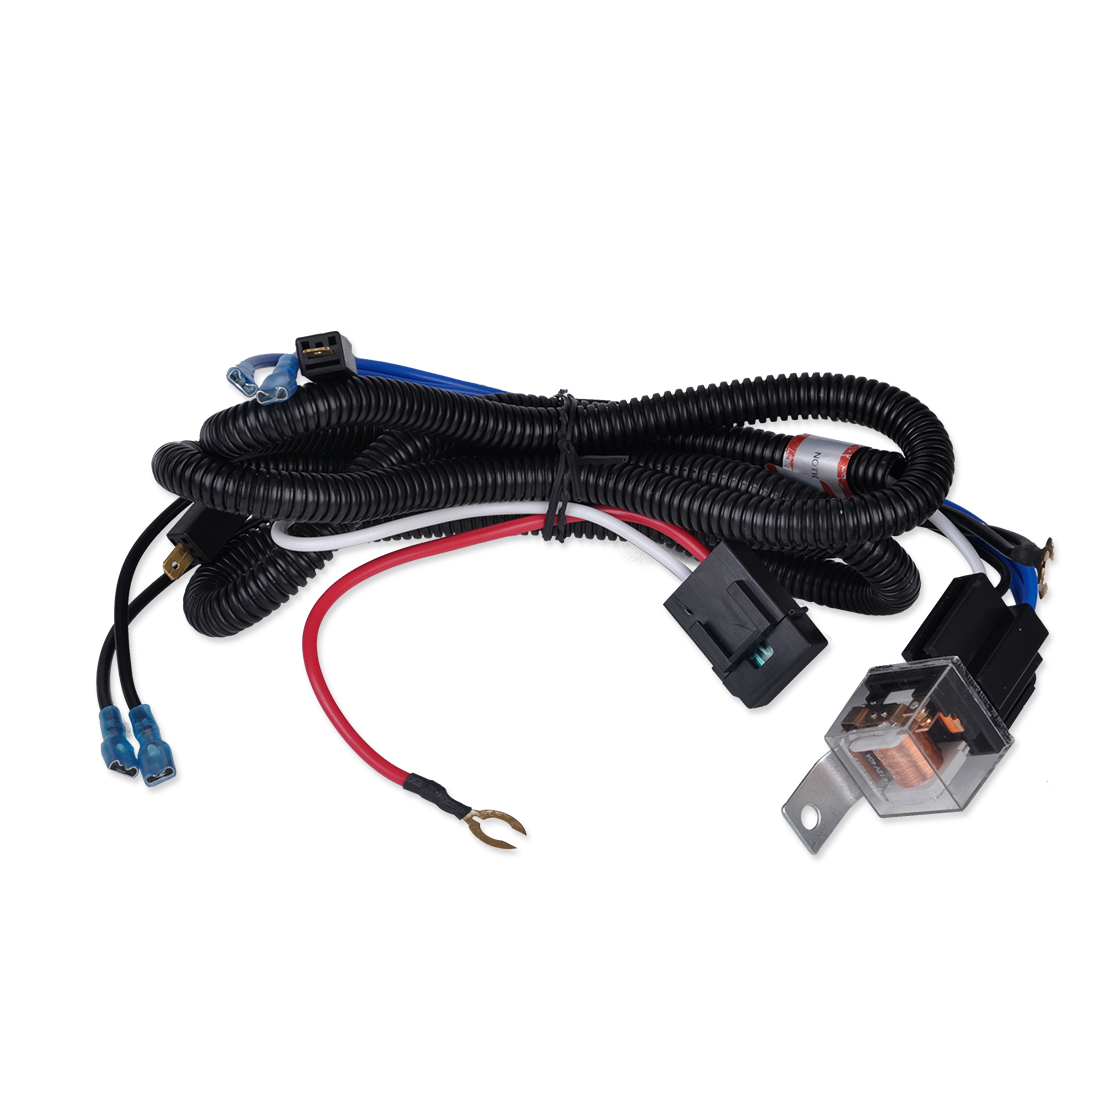 medium resolution of citall 12v car truck grille mount blast tone horn wiring harness relay kit for ford toyota suzuki peugeot kia honda mazda audi in cables adapters sockets